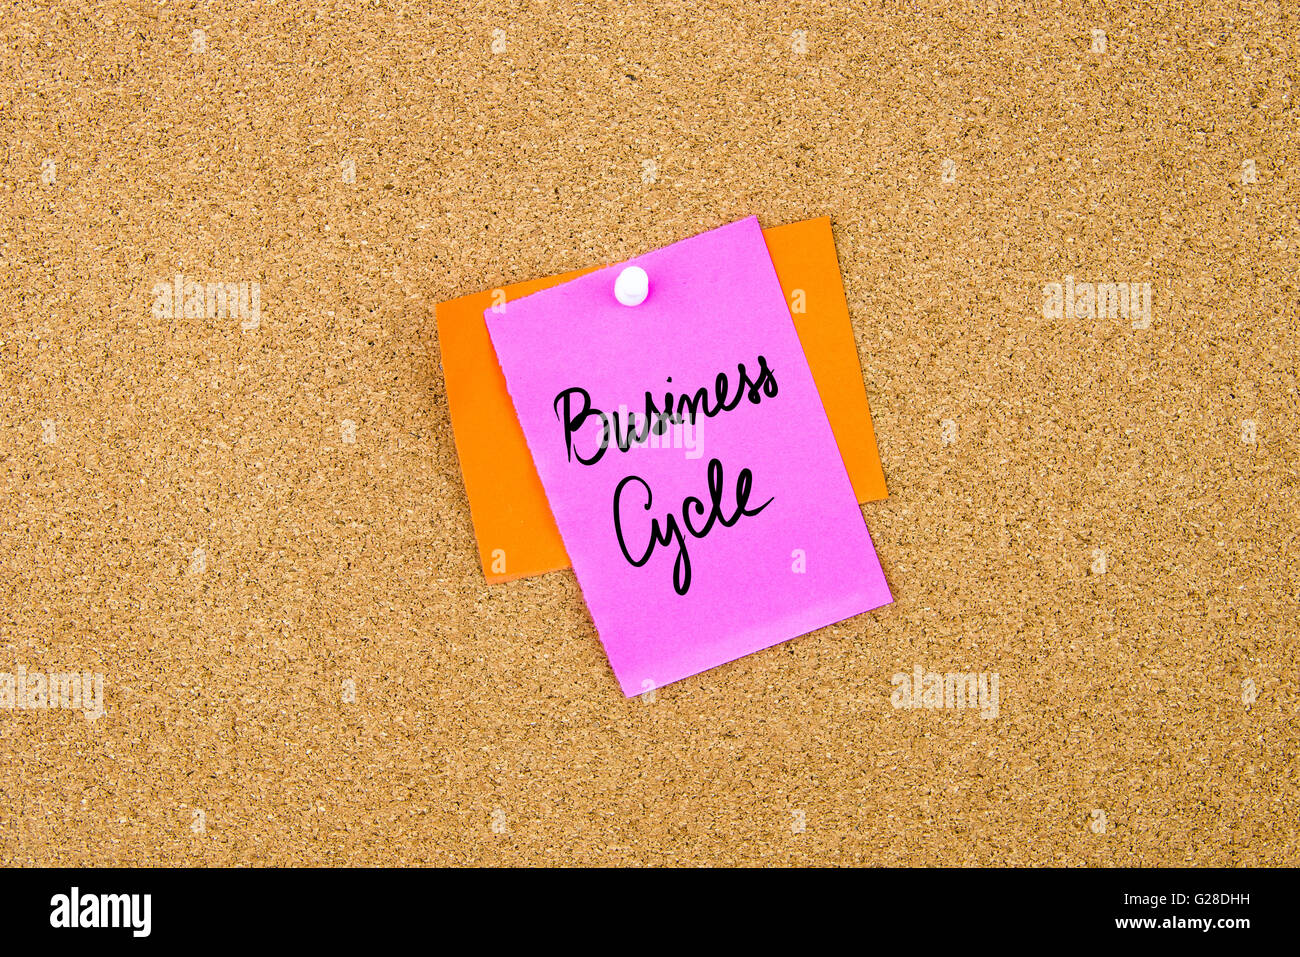 Business Cycle written on paper note pinned on cork board with white thumbtack, copy space available - Stock Image